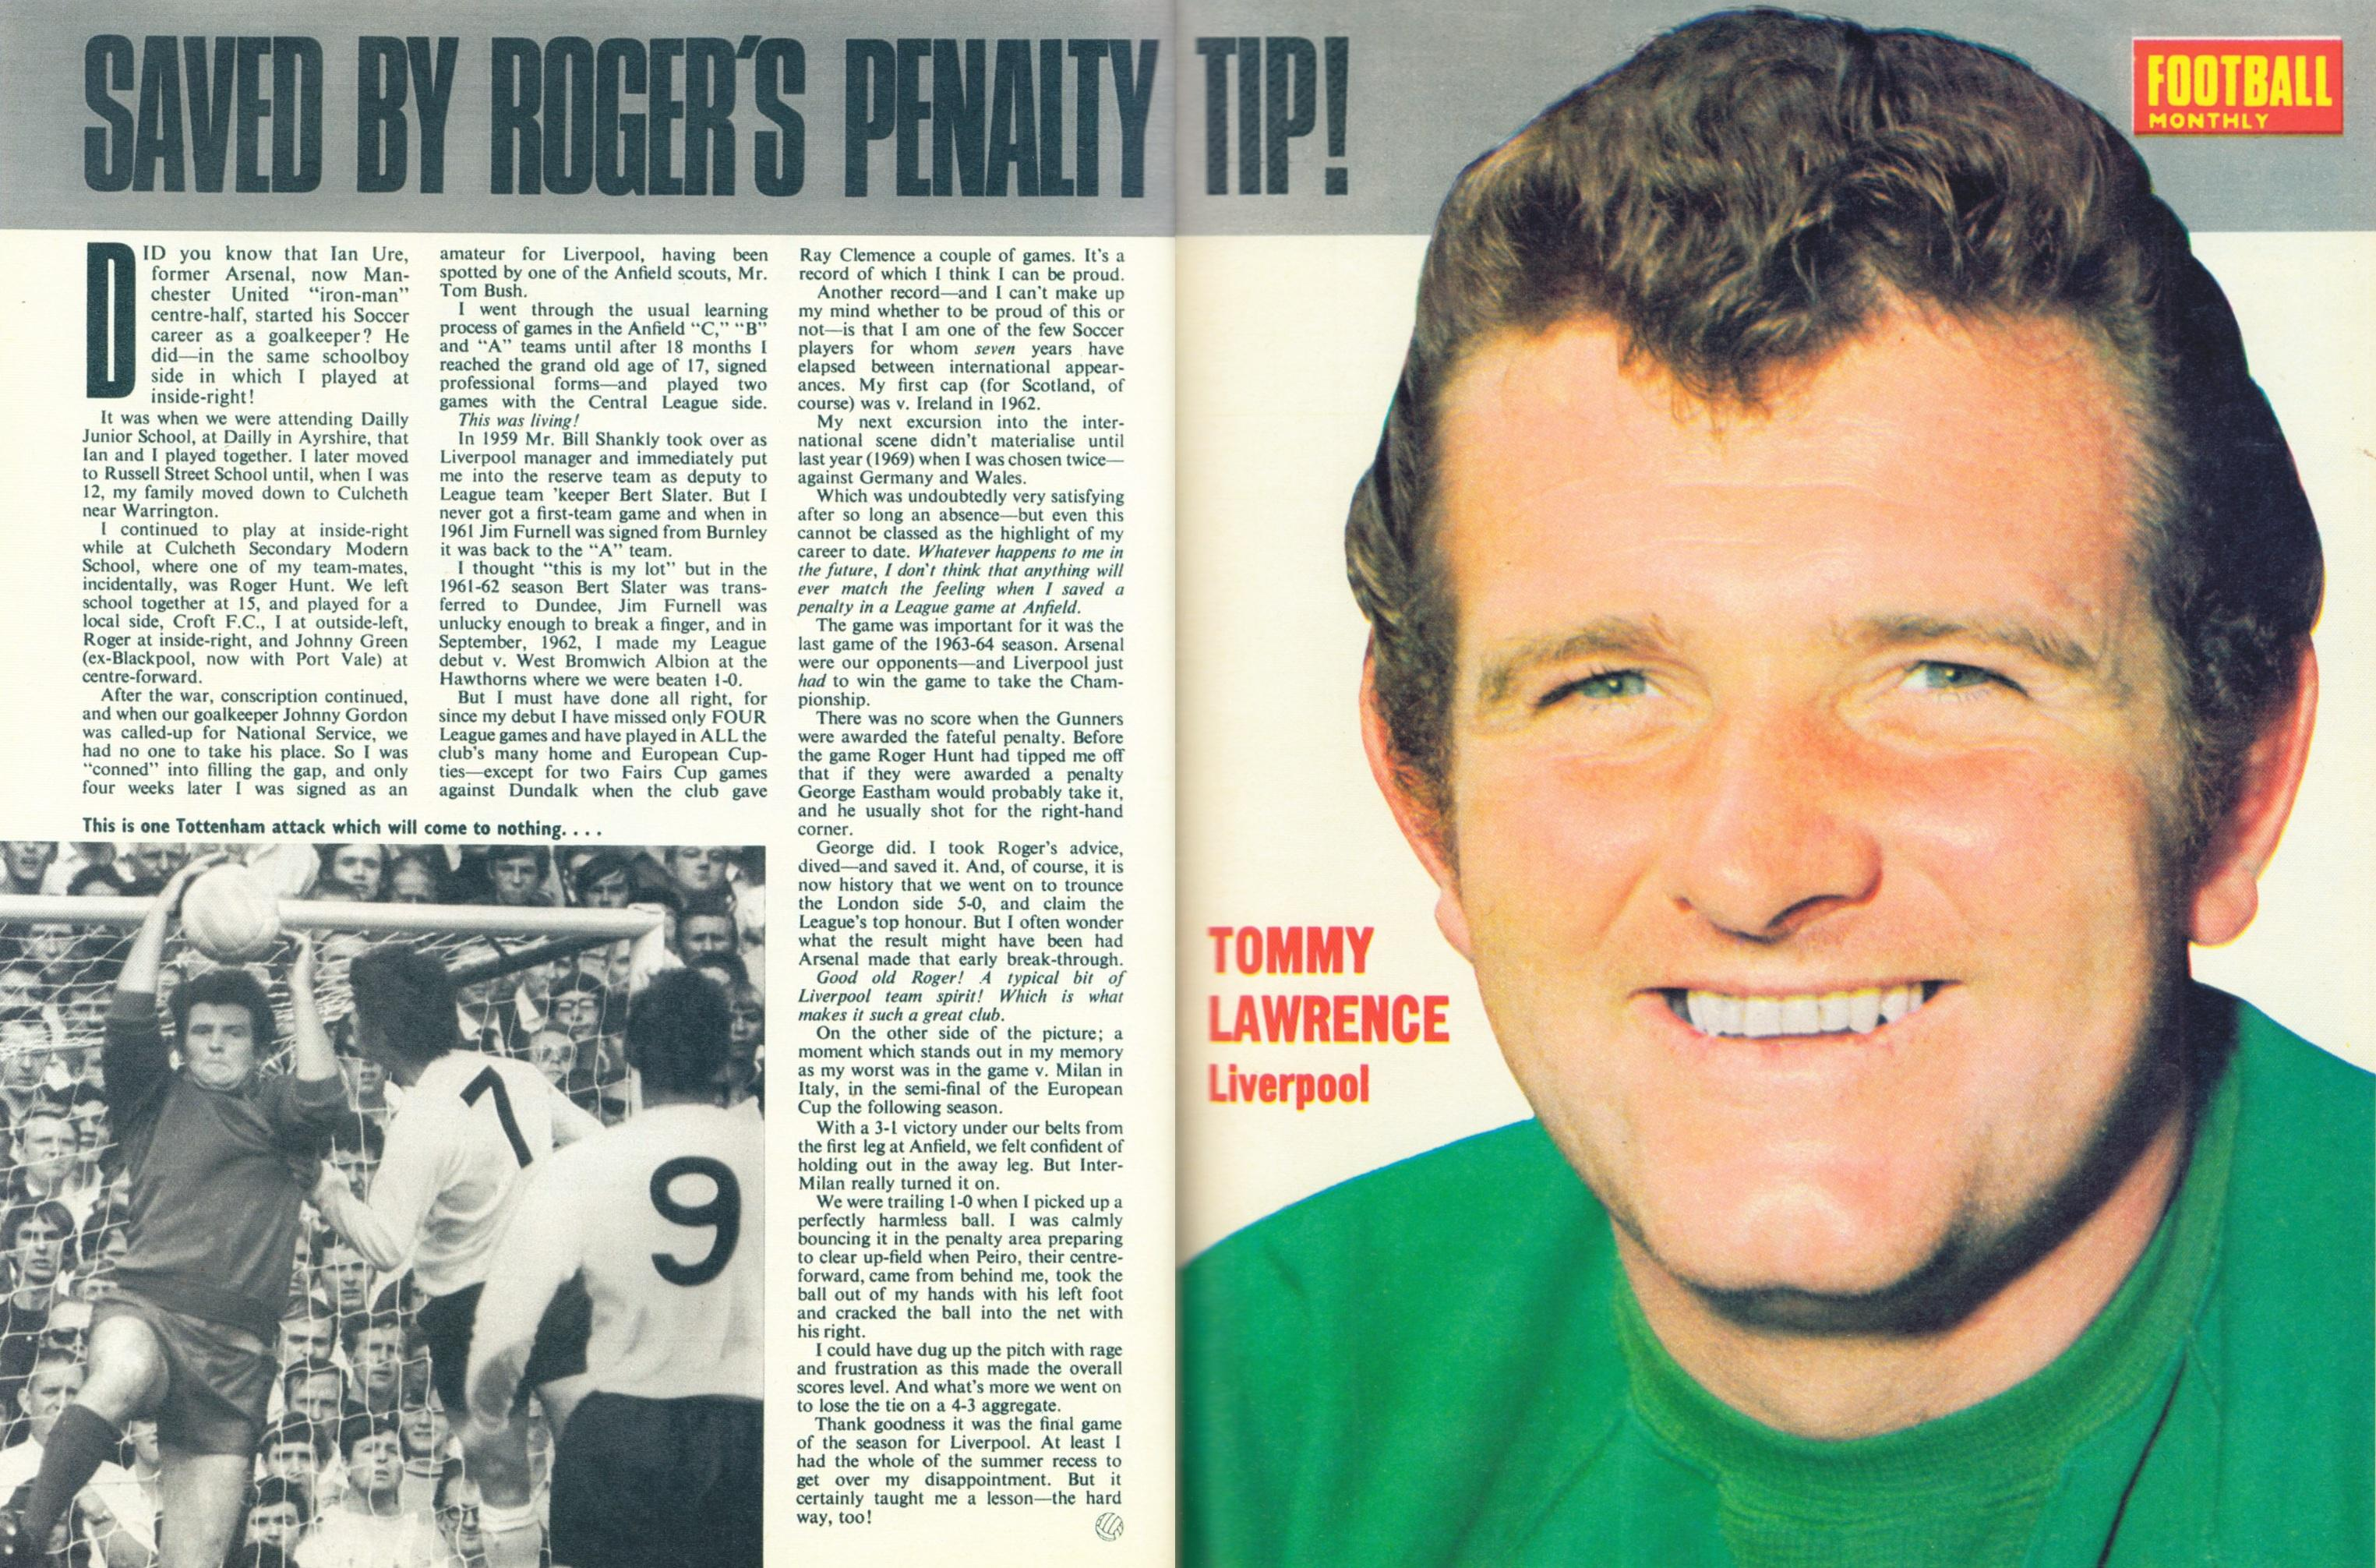 Saved by Roger's tip - Football Monthly April 1970